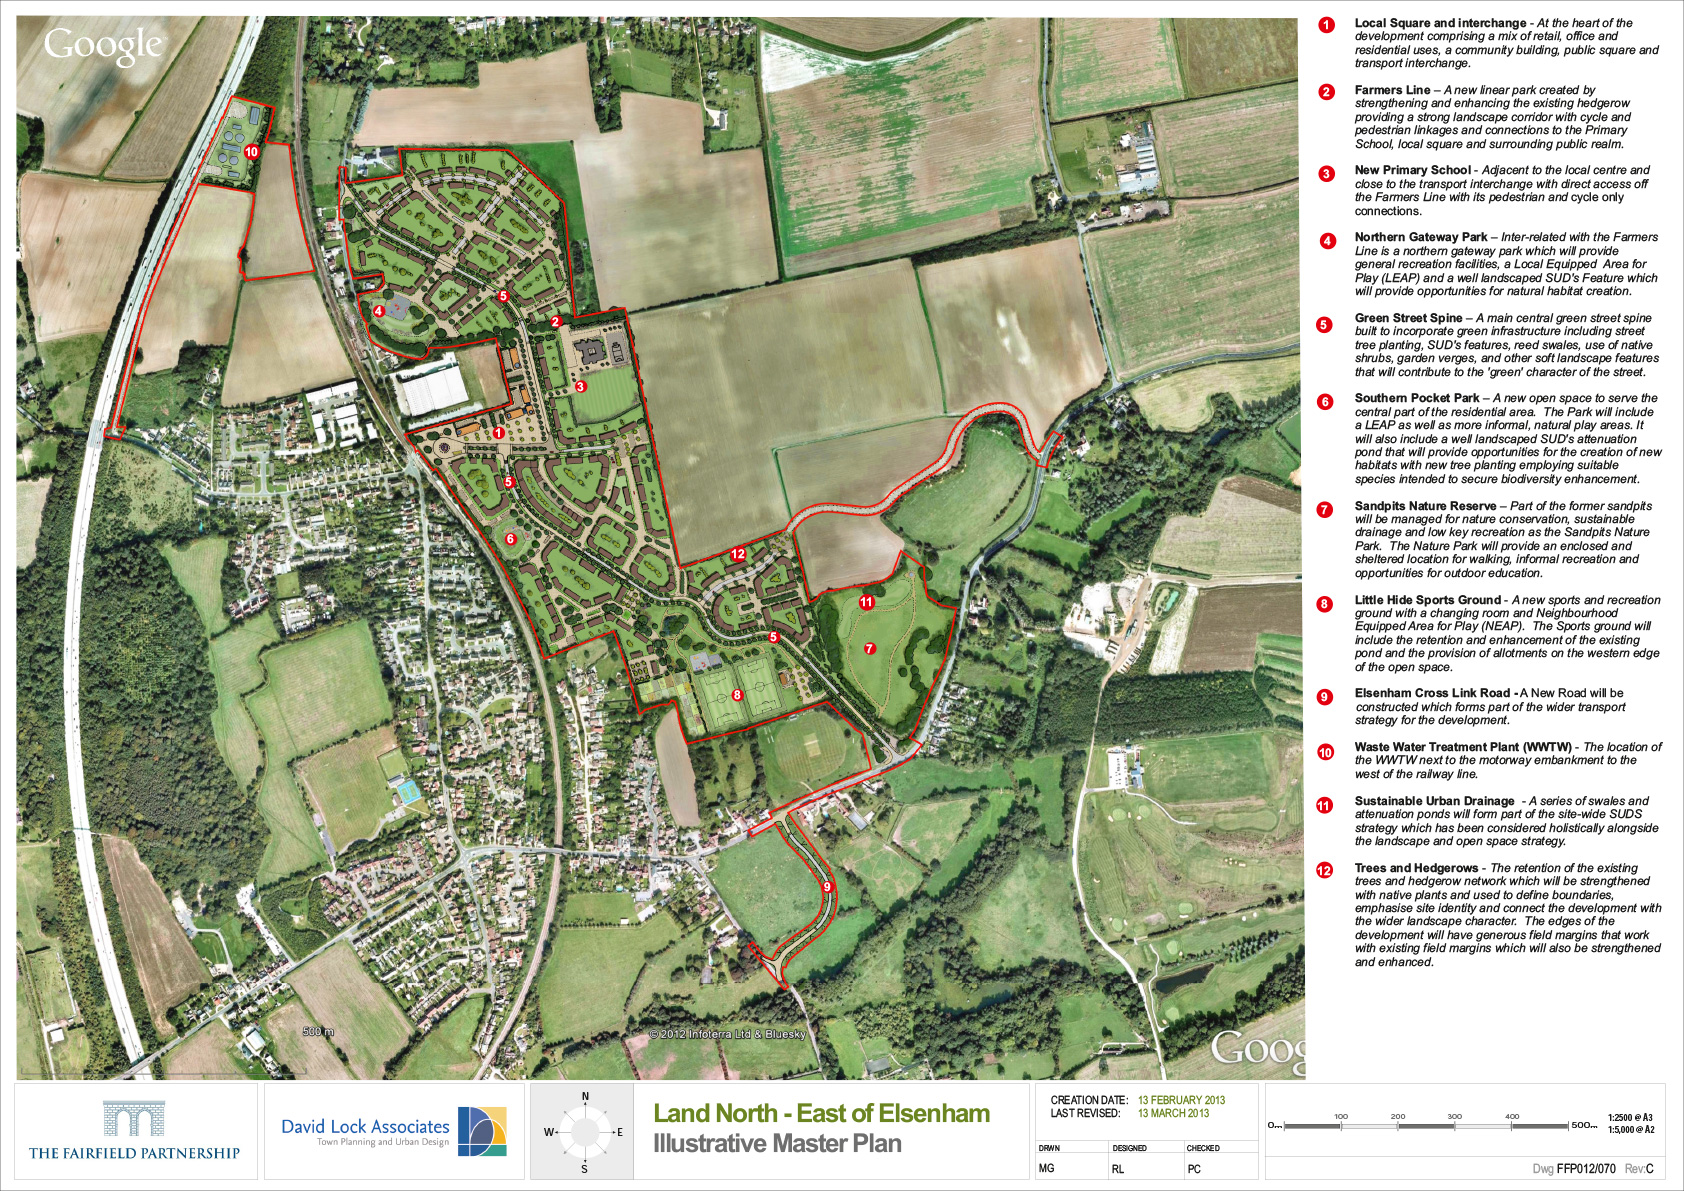 Fairfield Partnership Elsenham site plan